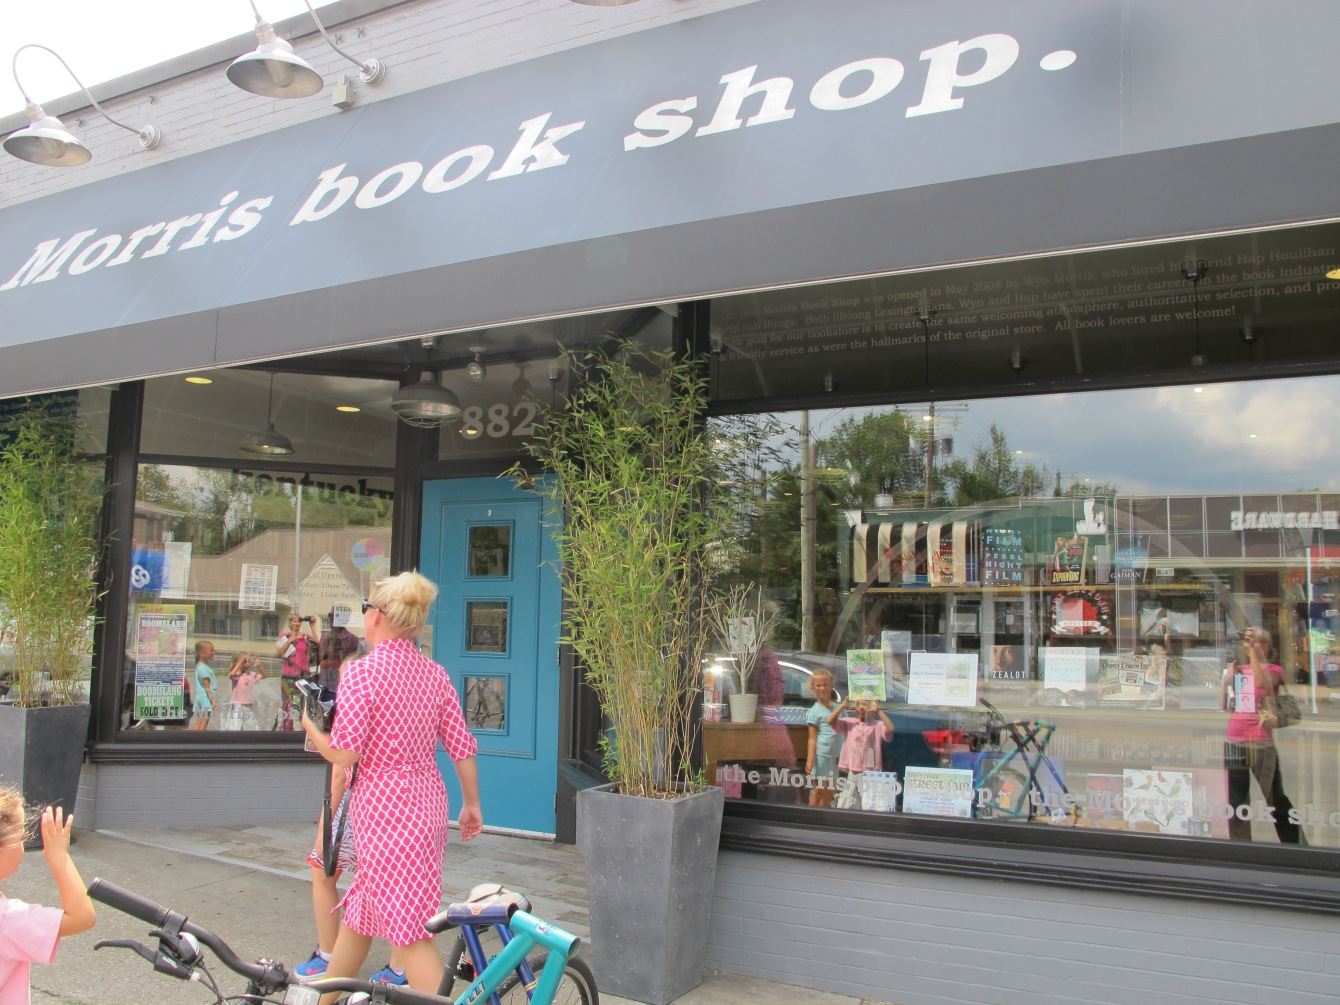 Lexington's independently owned bookstore, Morris Book Shop, is a favorite of @AnnaSeacat of Socially MInded Marketing.